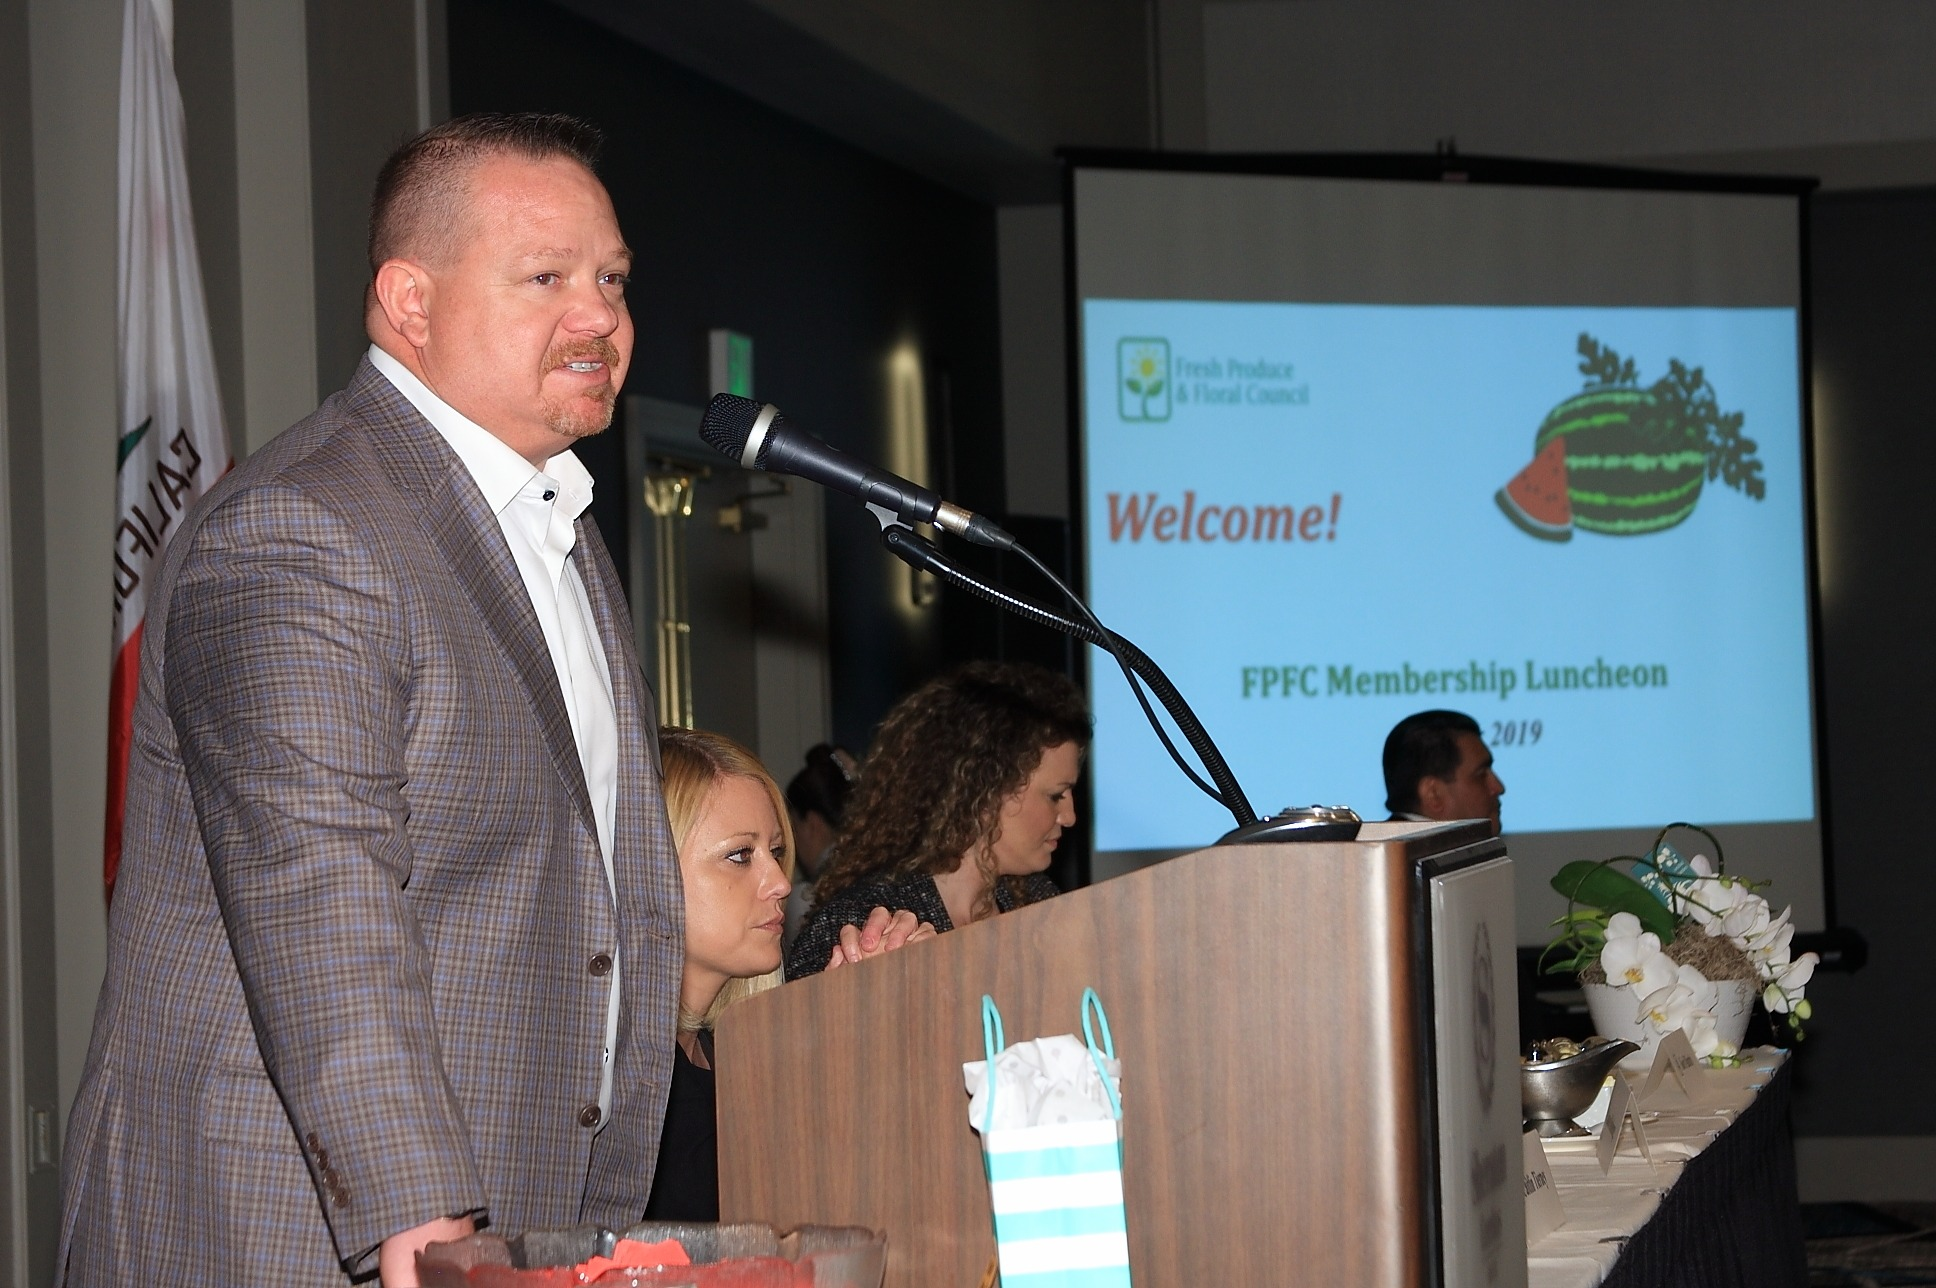 FPFC Chair Andrew Bivens of Westlake Produce Company